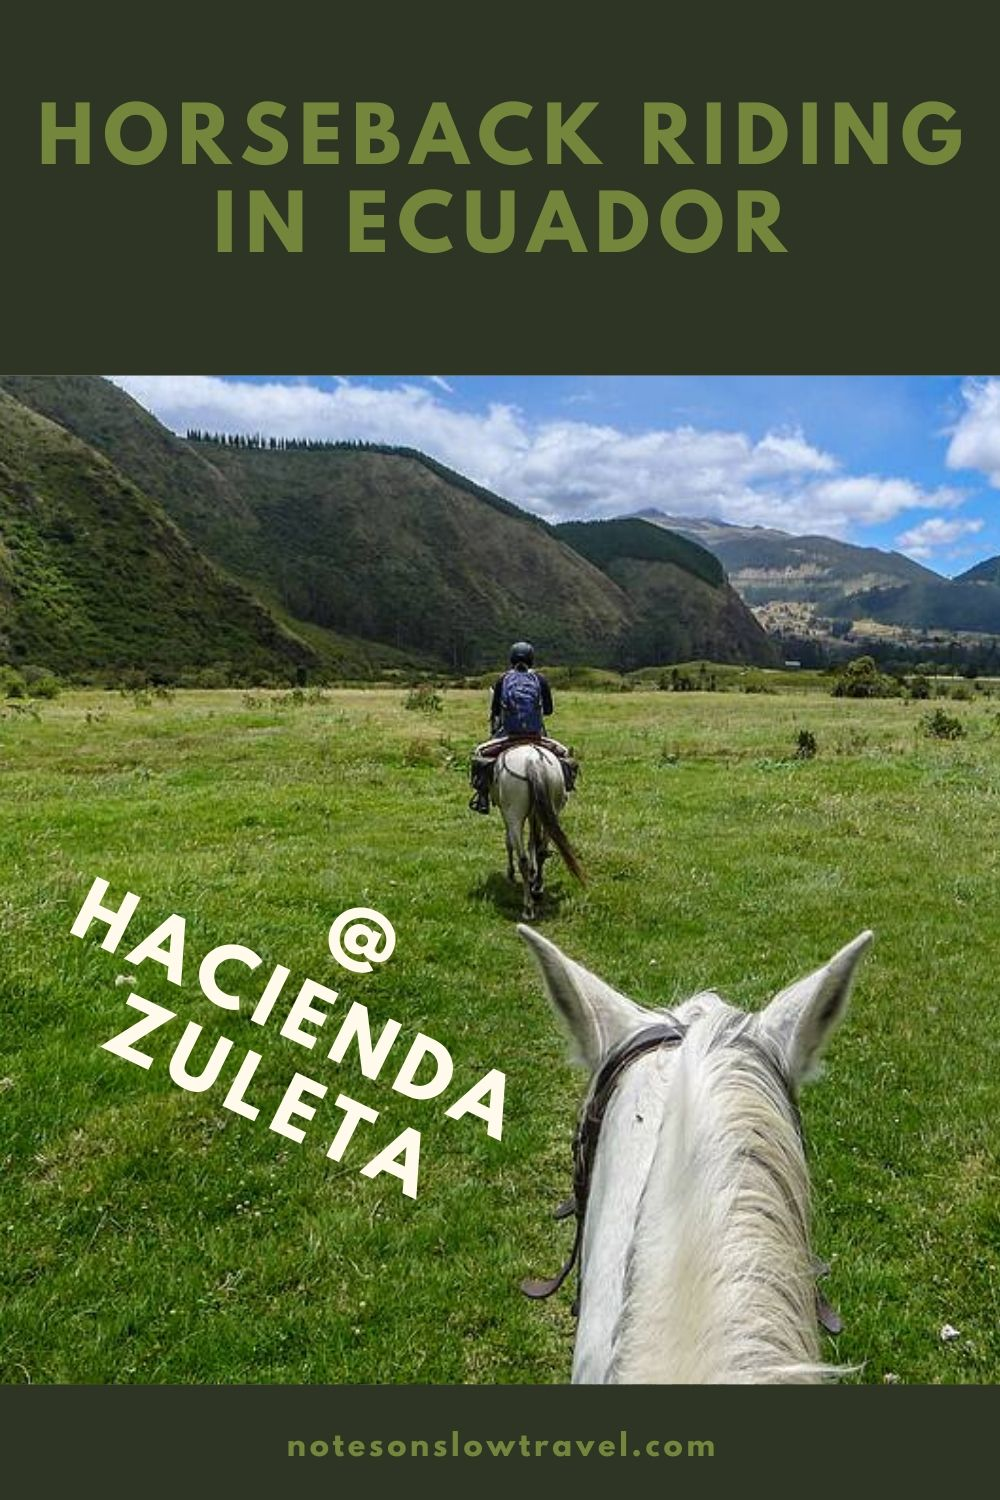 Horseback riding at Hacienda Zuleta, Ecuador